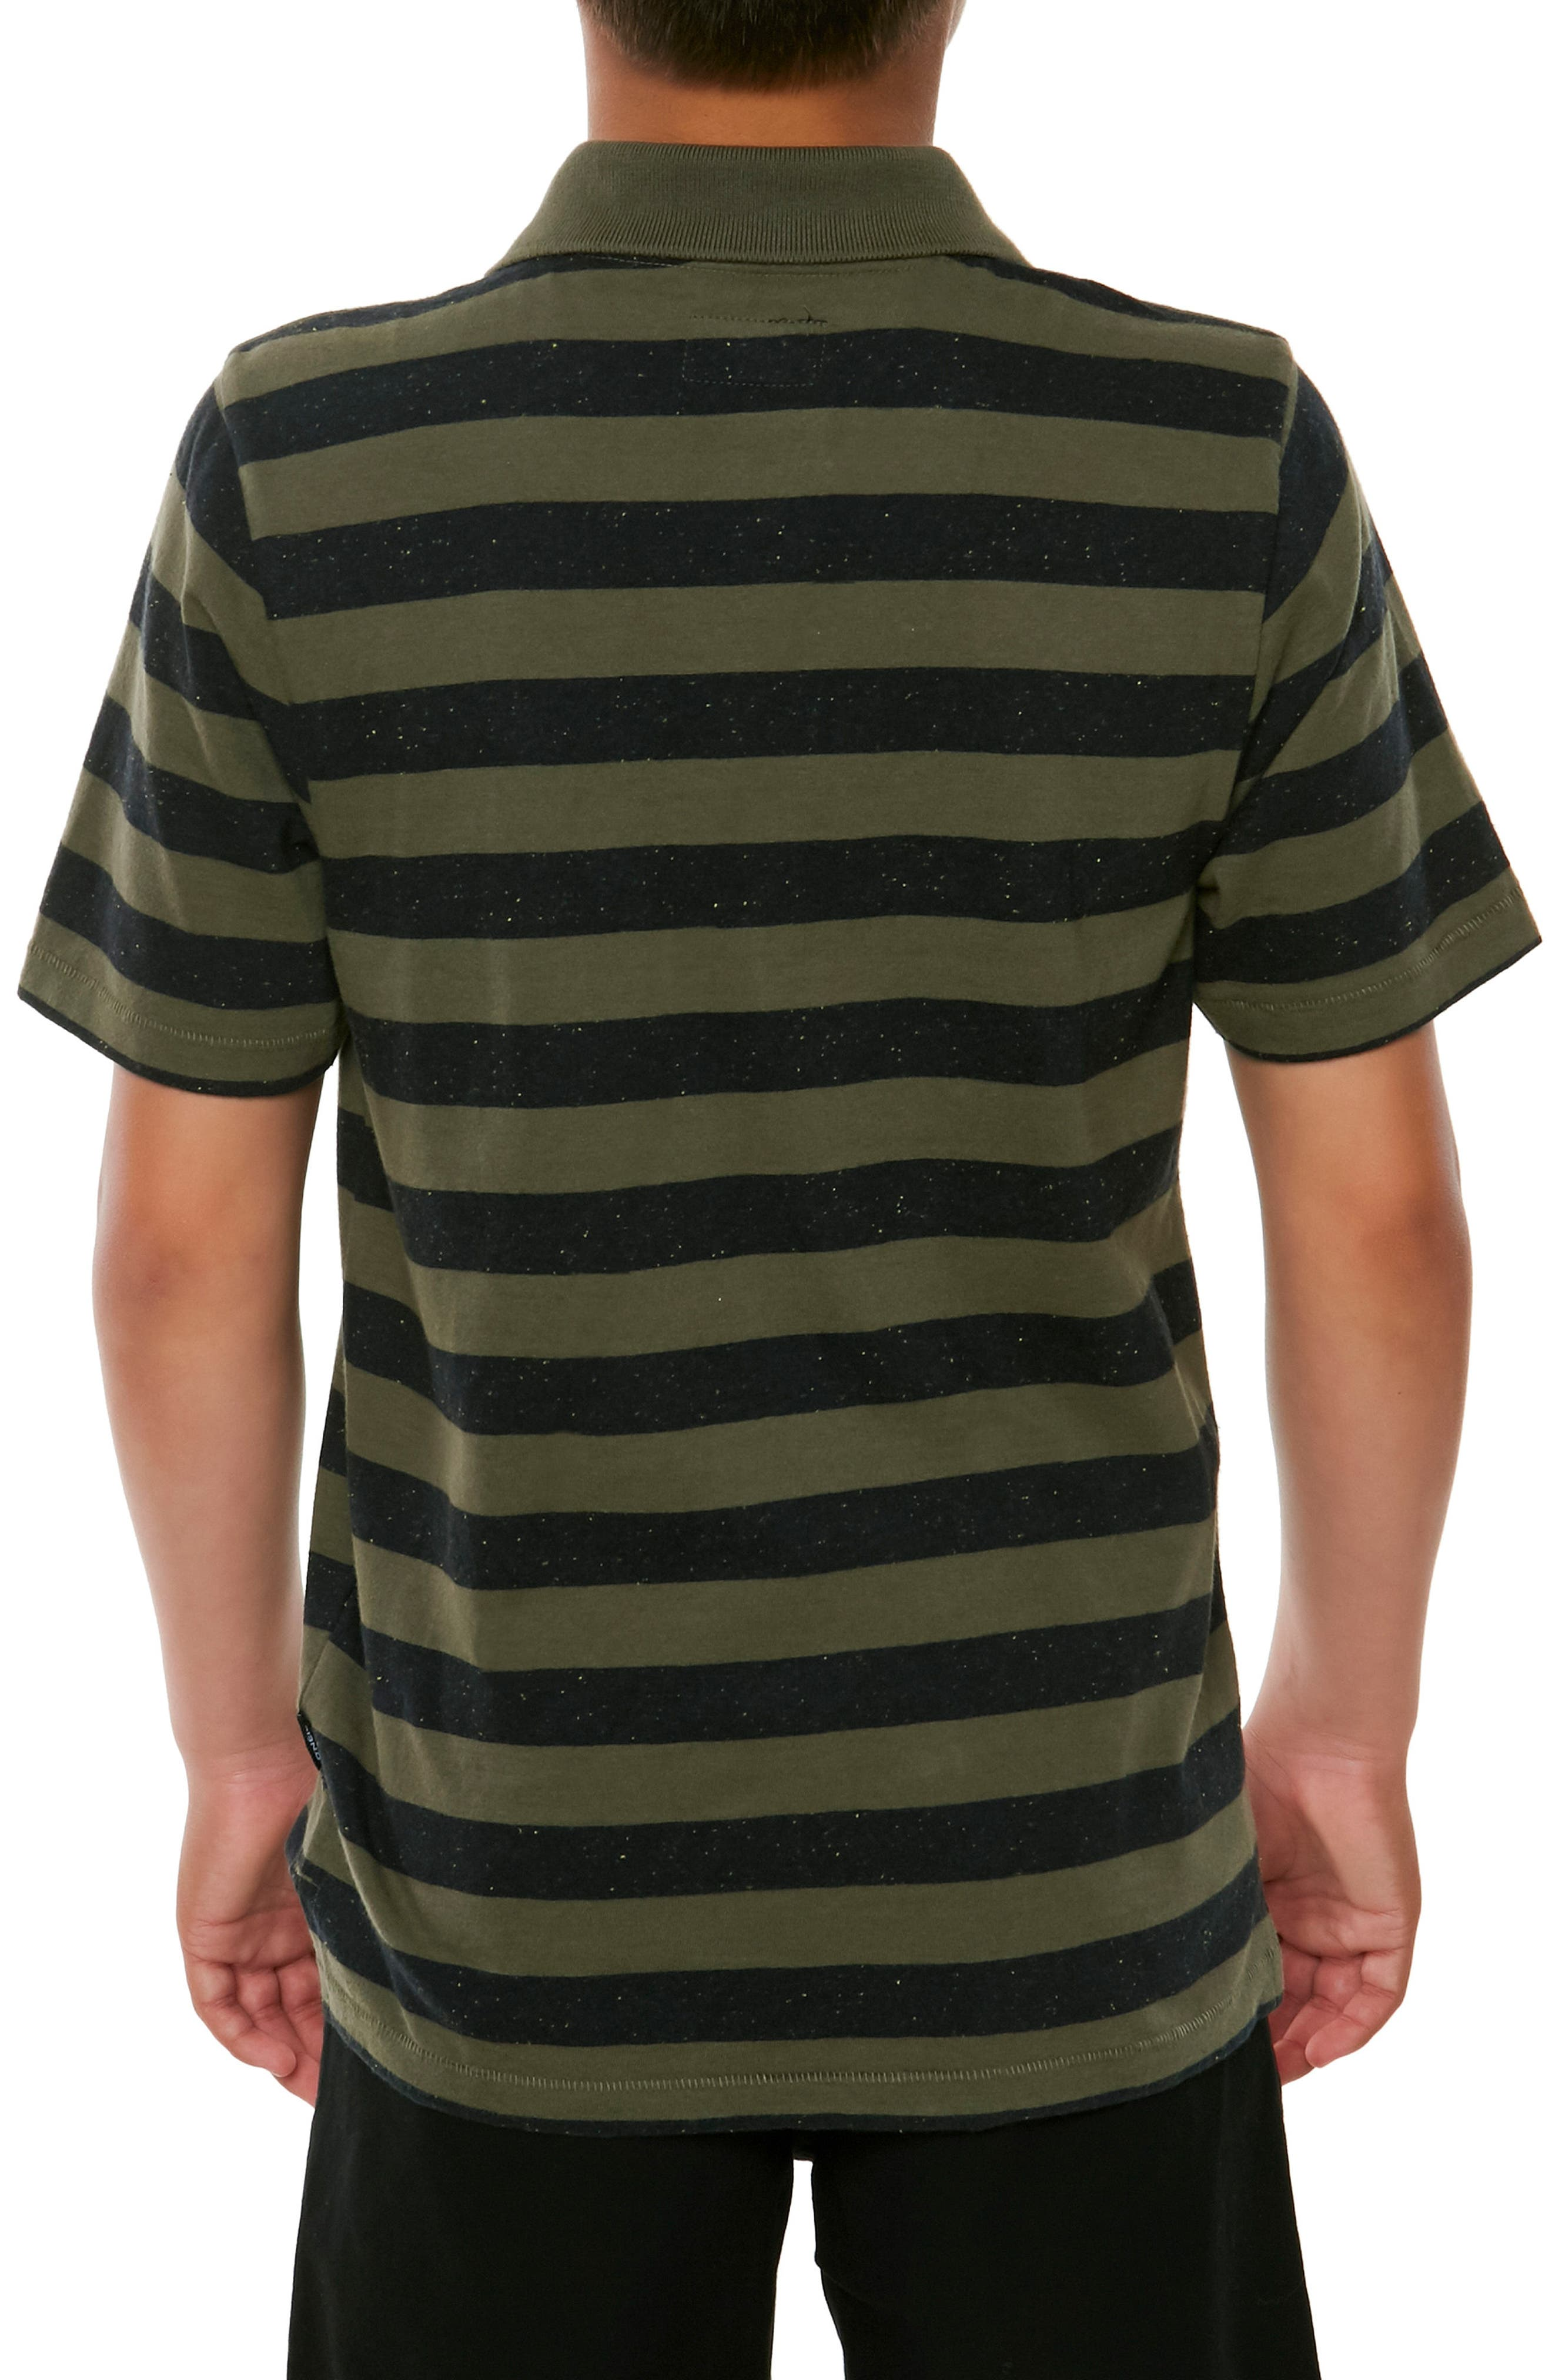 Scoundrel Striped Polo,                             Alternate thumbnail 4, color,                             Army Green